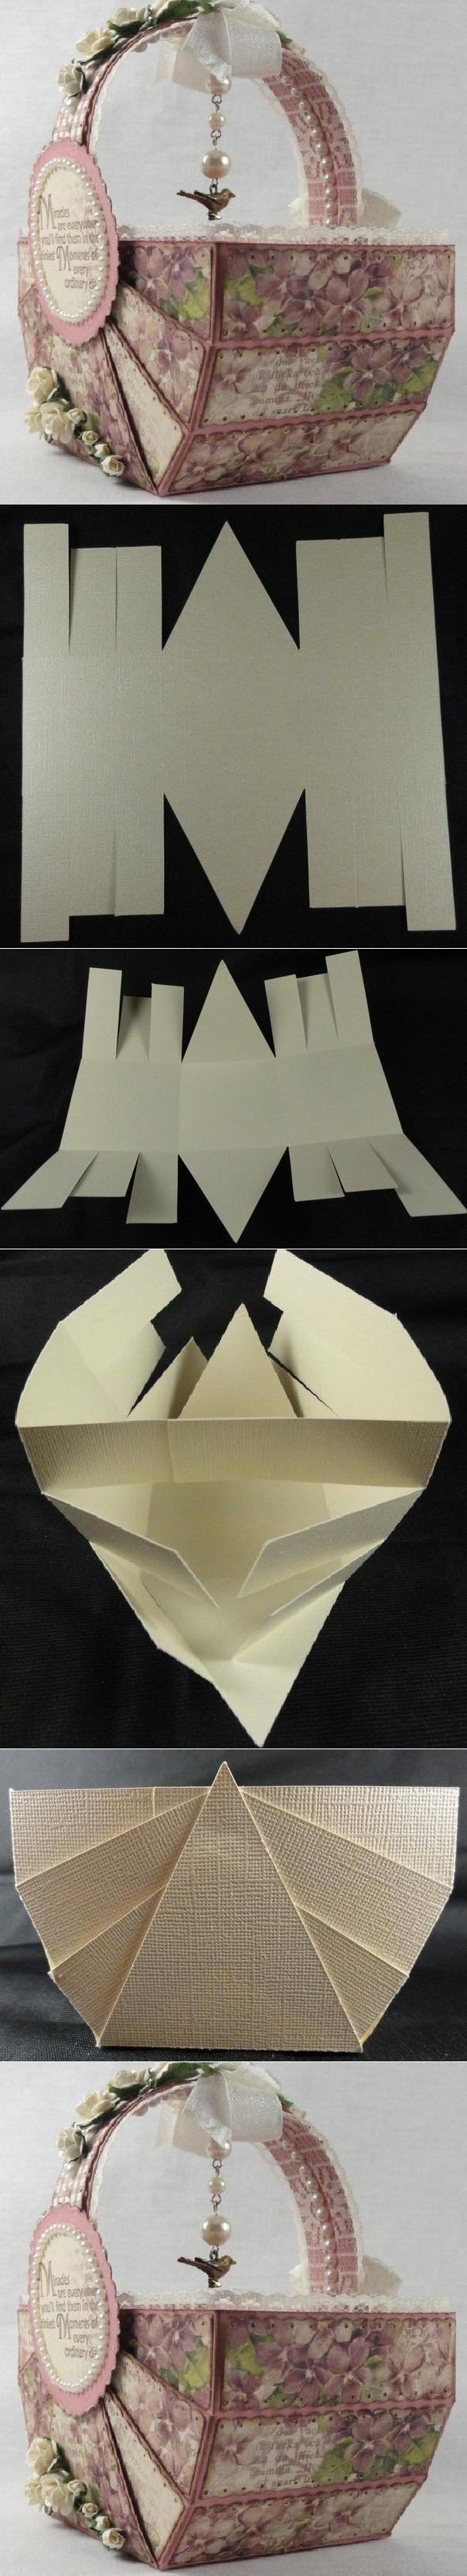 DIY Paper Basket